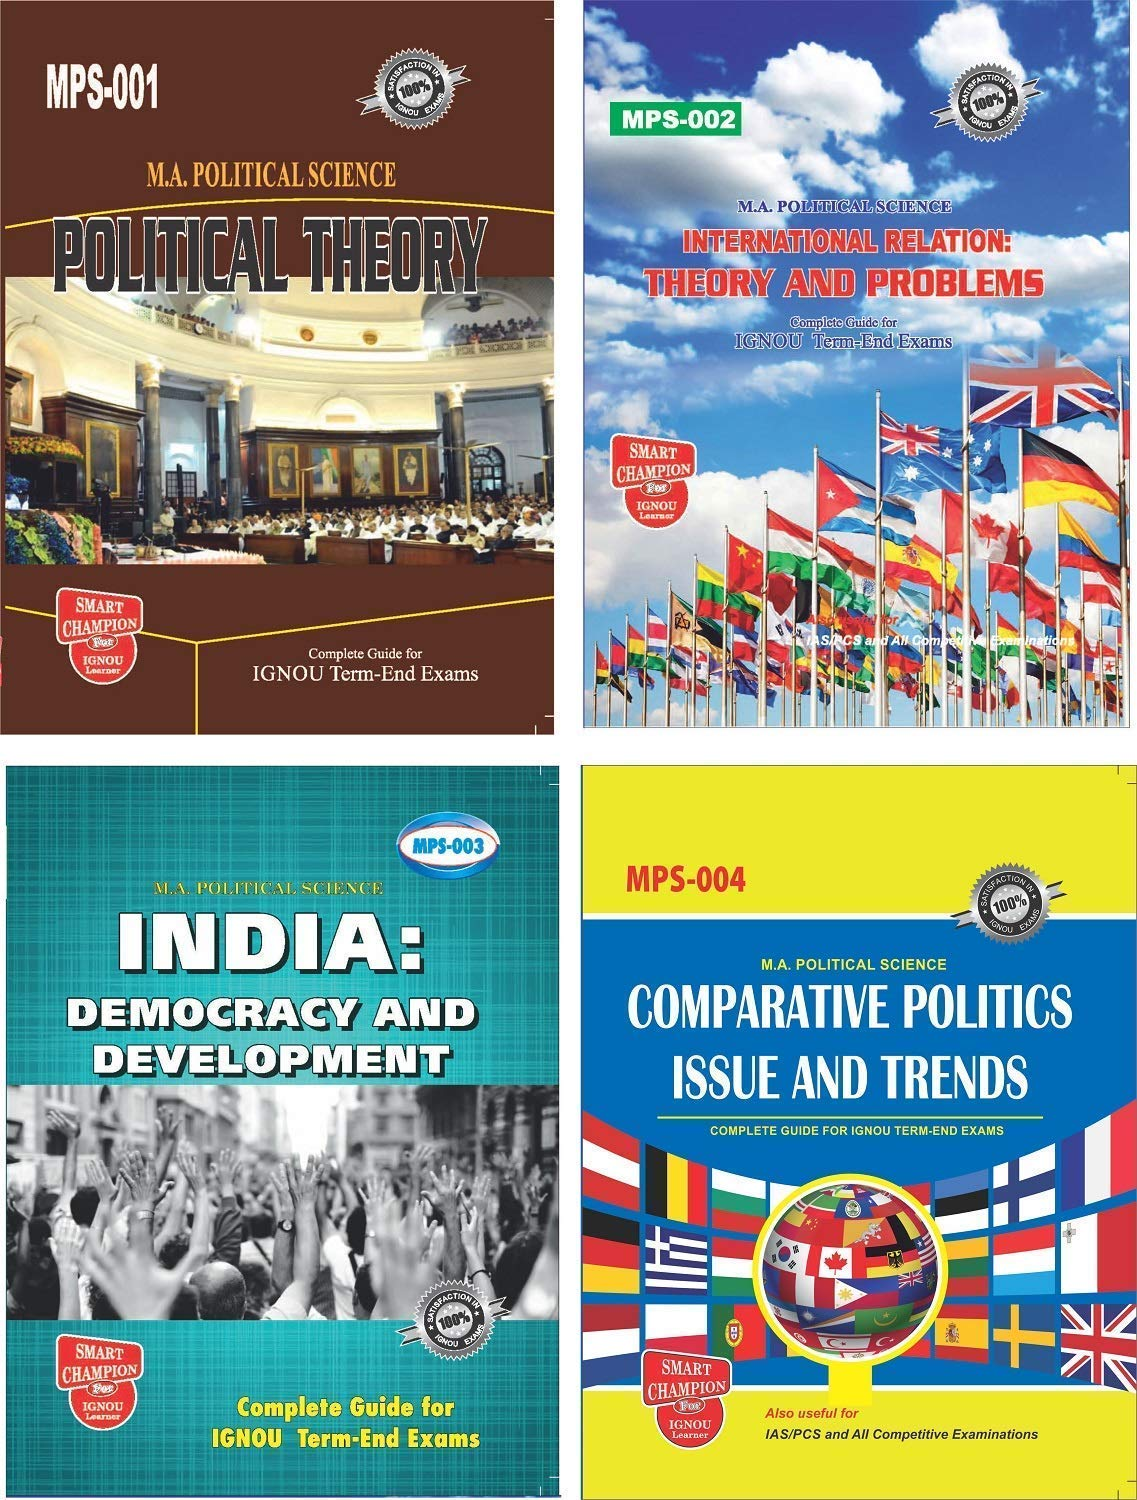 IGNOU Master in Political Science IGNOU MPS (IGNOU MA POLITICAL SCIENCE) 1st YEAR (ENGLISH) IGNOU HELP BOOKS FOR EXAM PREPARATION WITH LATEST PREVIOUS YEARS SOLVED PAPERS (LATEST EDITION 2019) COMBO OF MPS 01, MPS 02, MPS 03 AND MPS 04